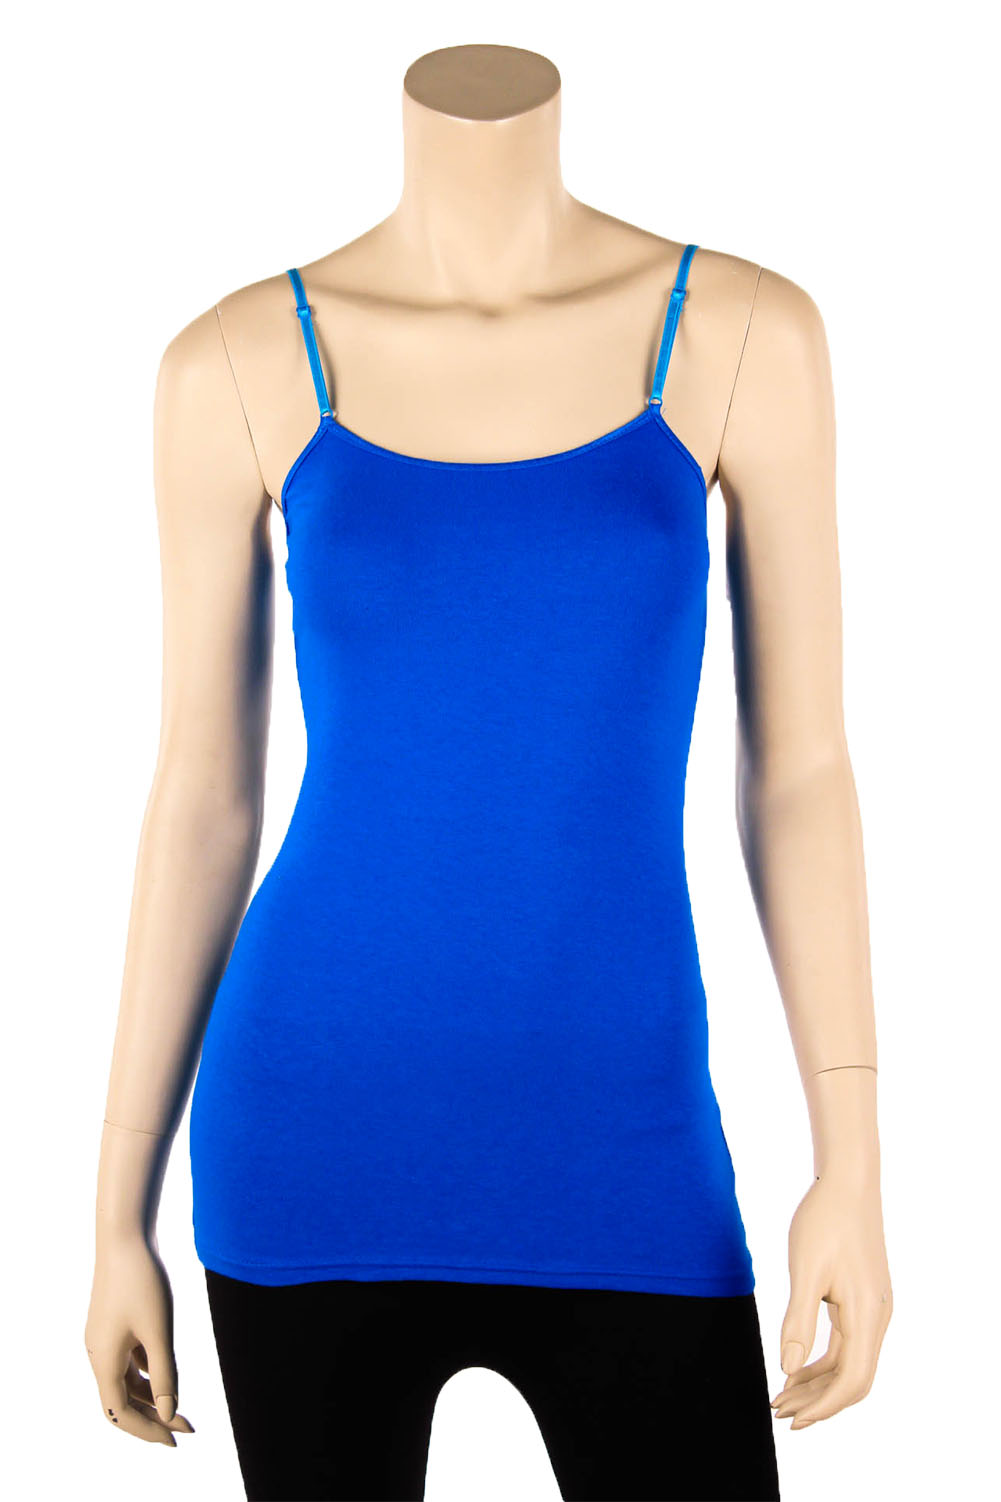 Find great deals on eBay for spaghetti strap tank top. Shop with confidence.